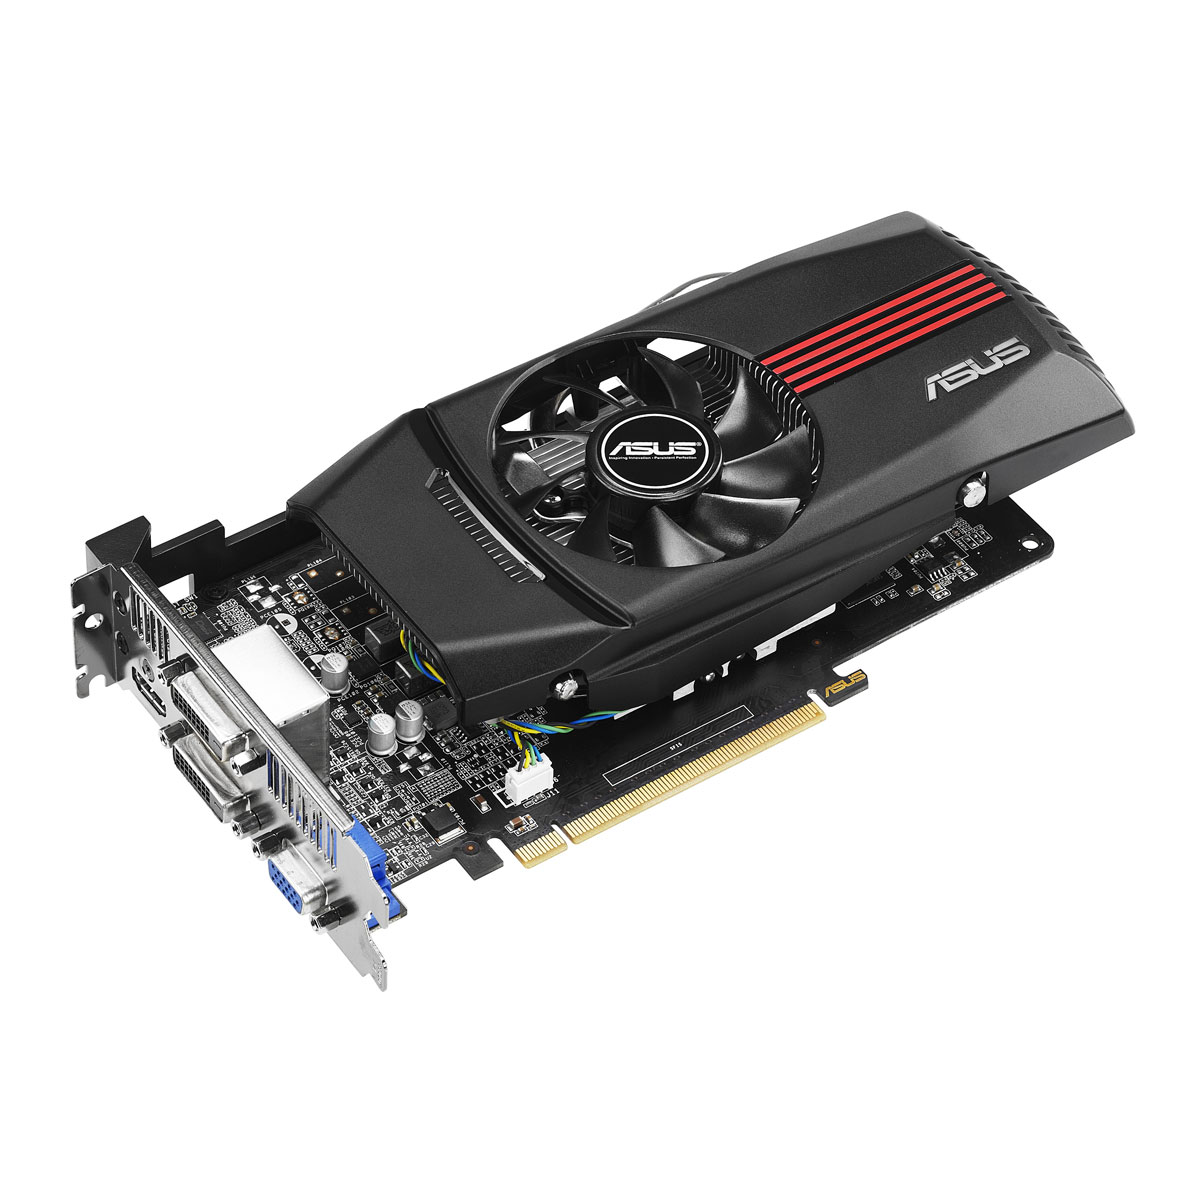 asus geforce gtx650 dctg 1gd5 carte graphique asus sur. Black Bedroom Furniture Sets. Home Design Ideas